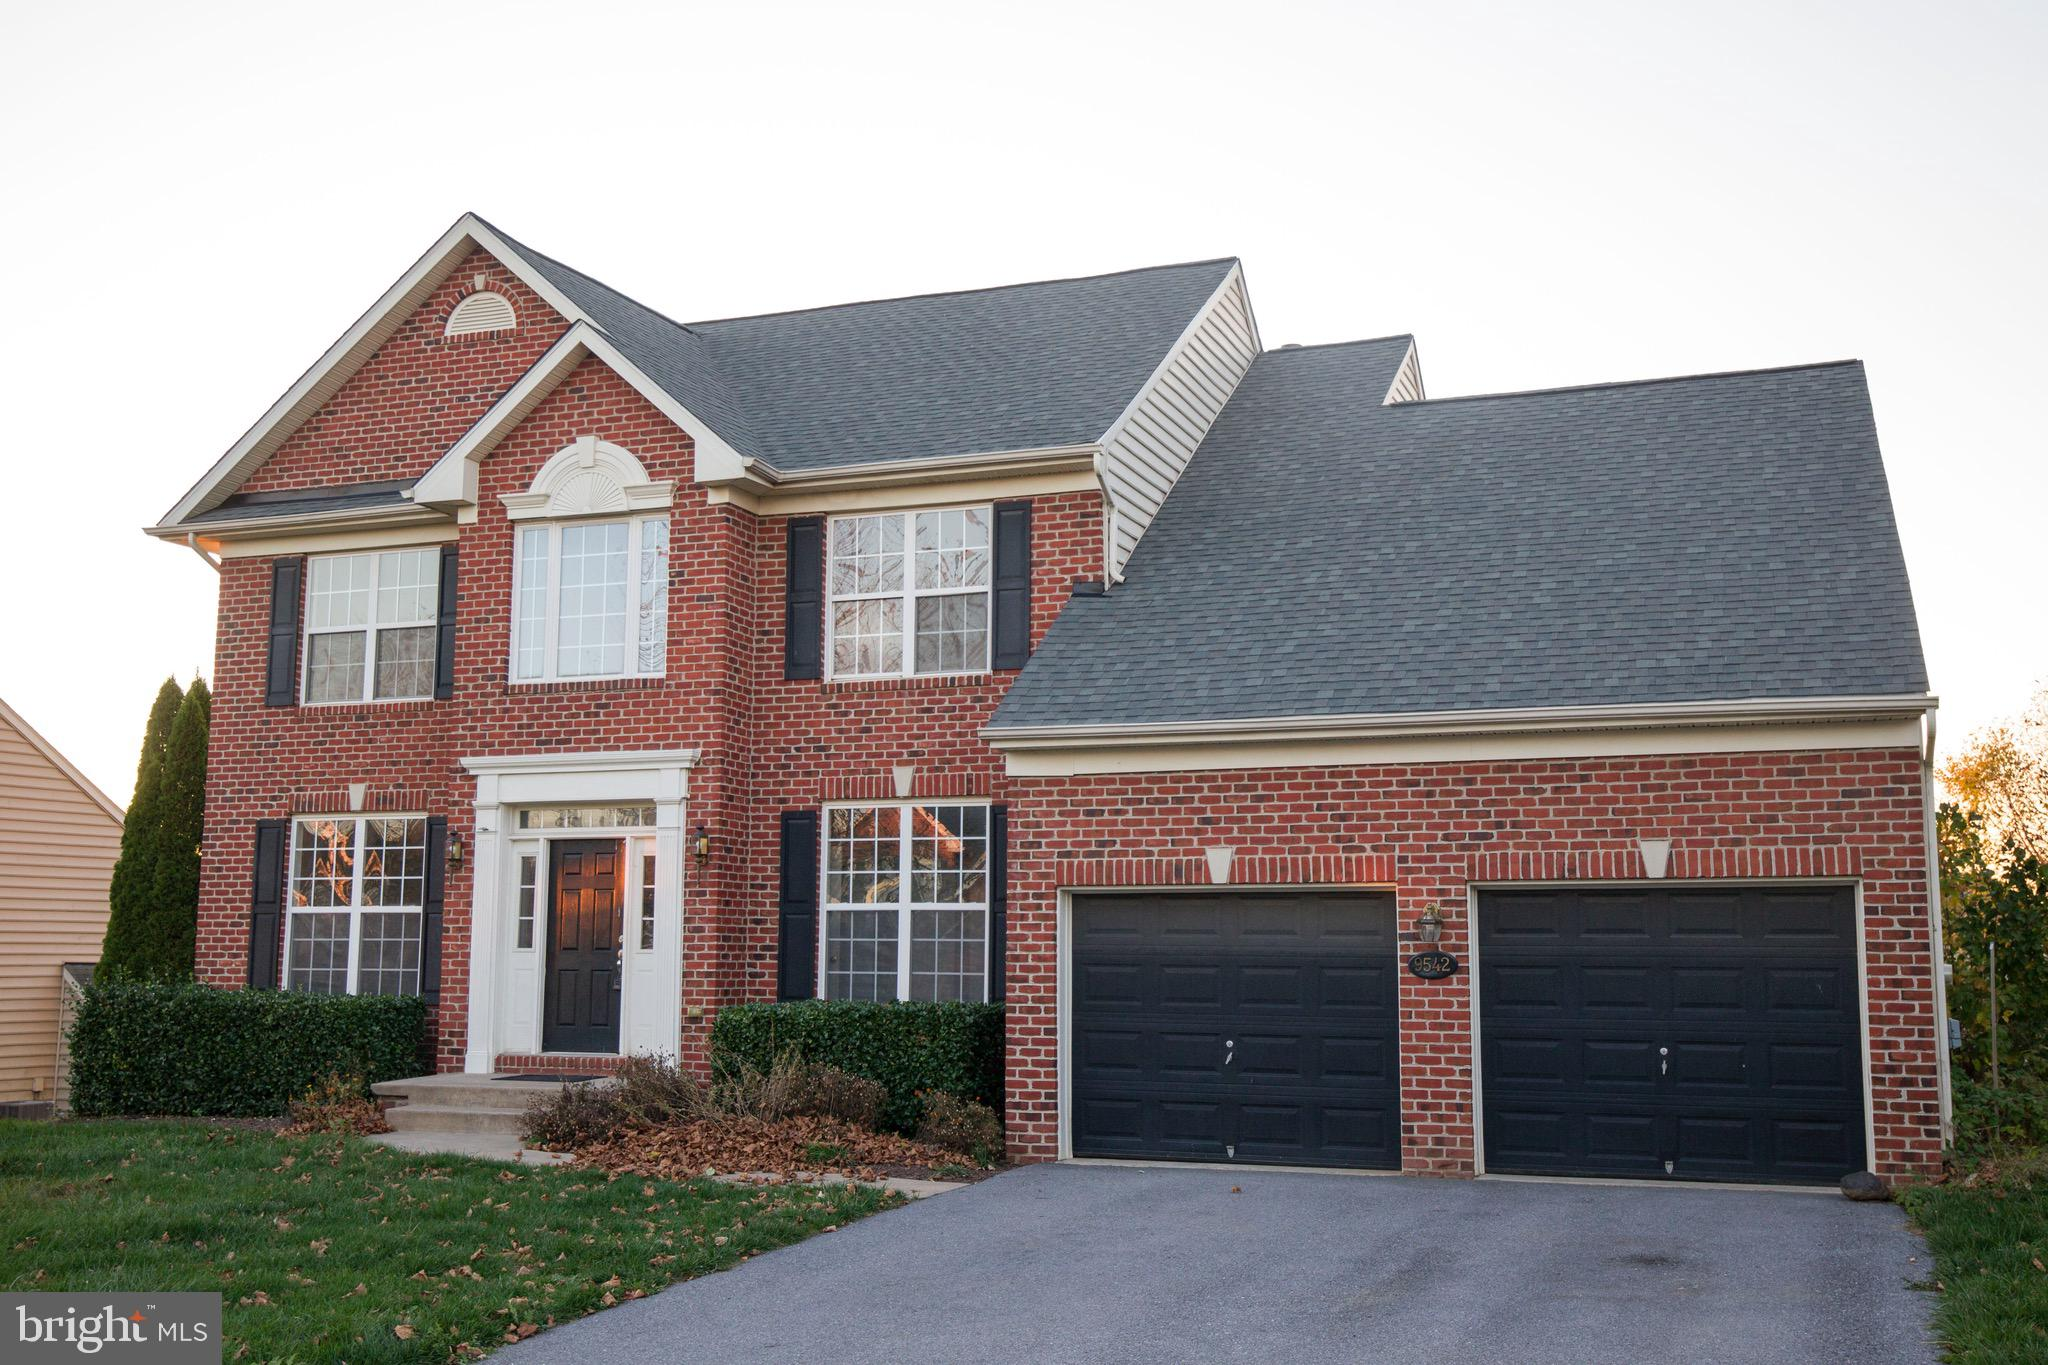 9542 MORNING WALK Dr, Hagerstown, MD, 21740